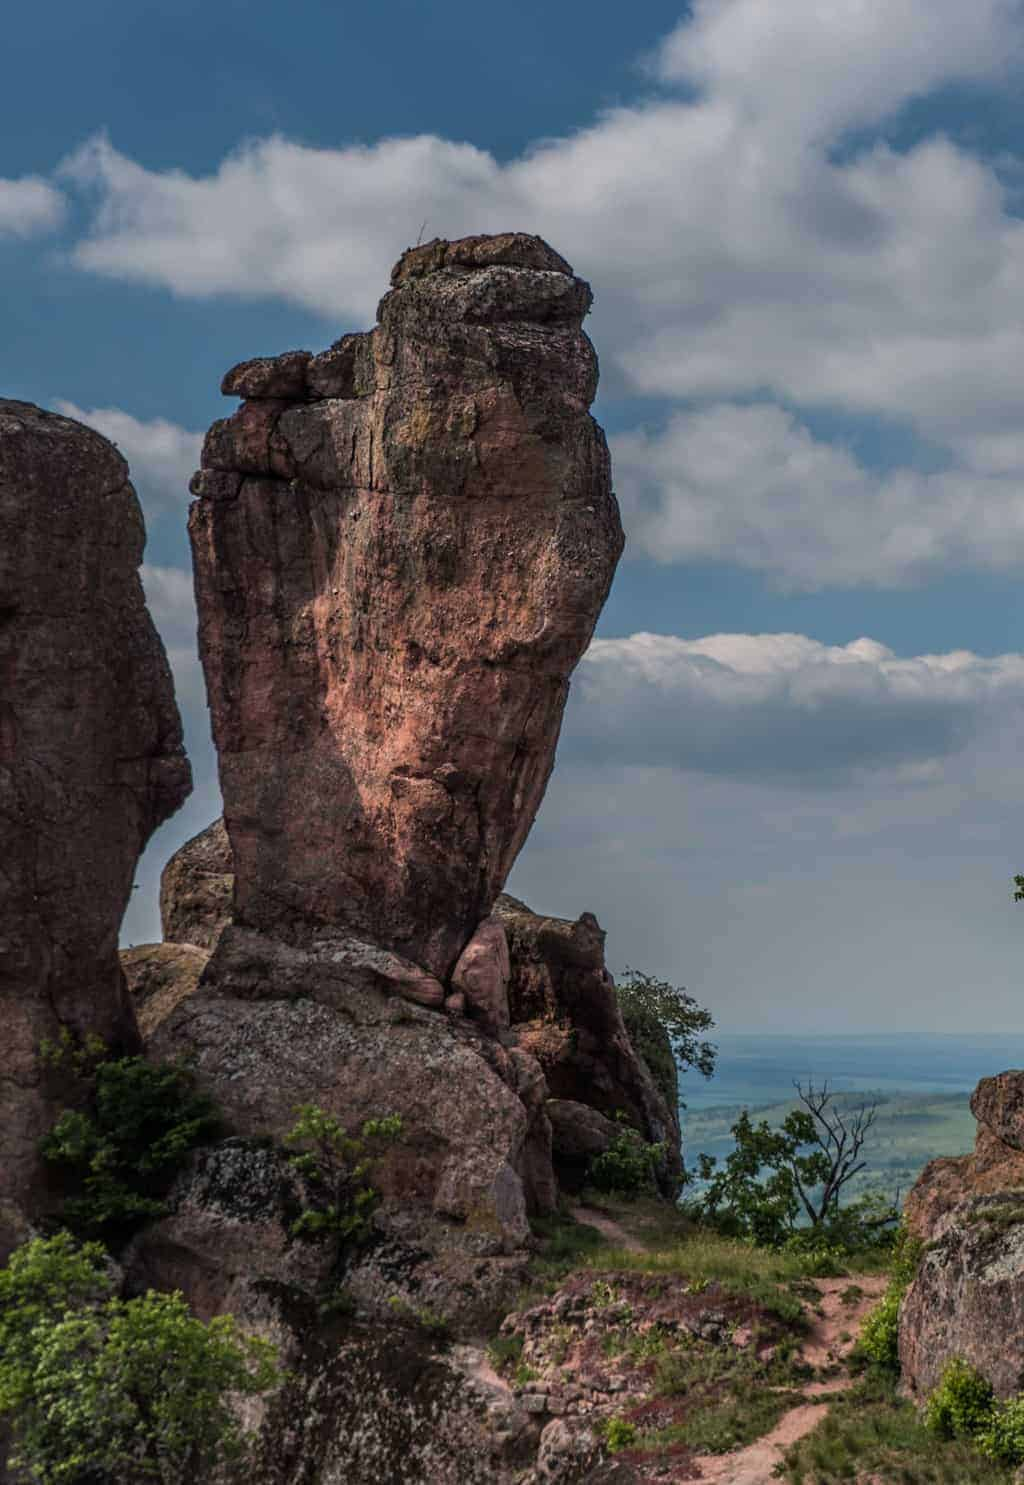 Belogradchik. Cruising the Danube- Eastern Europe